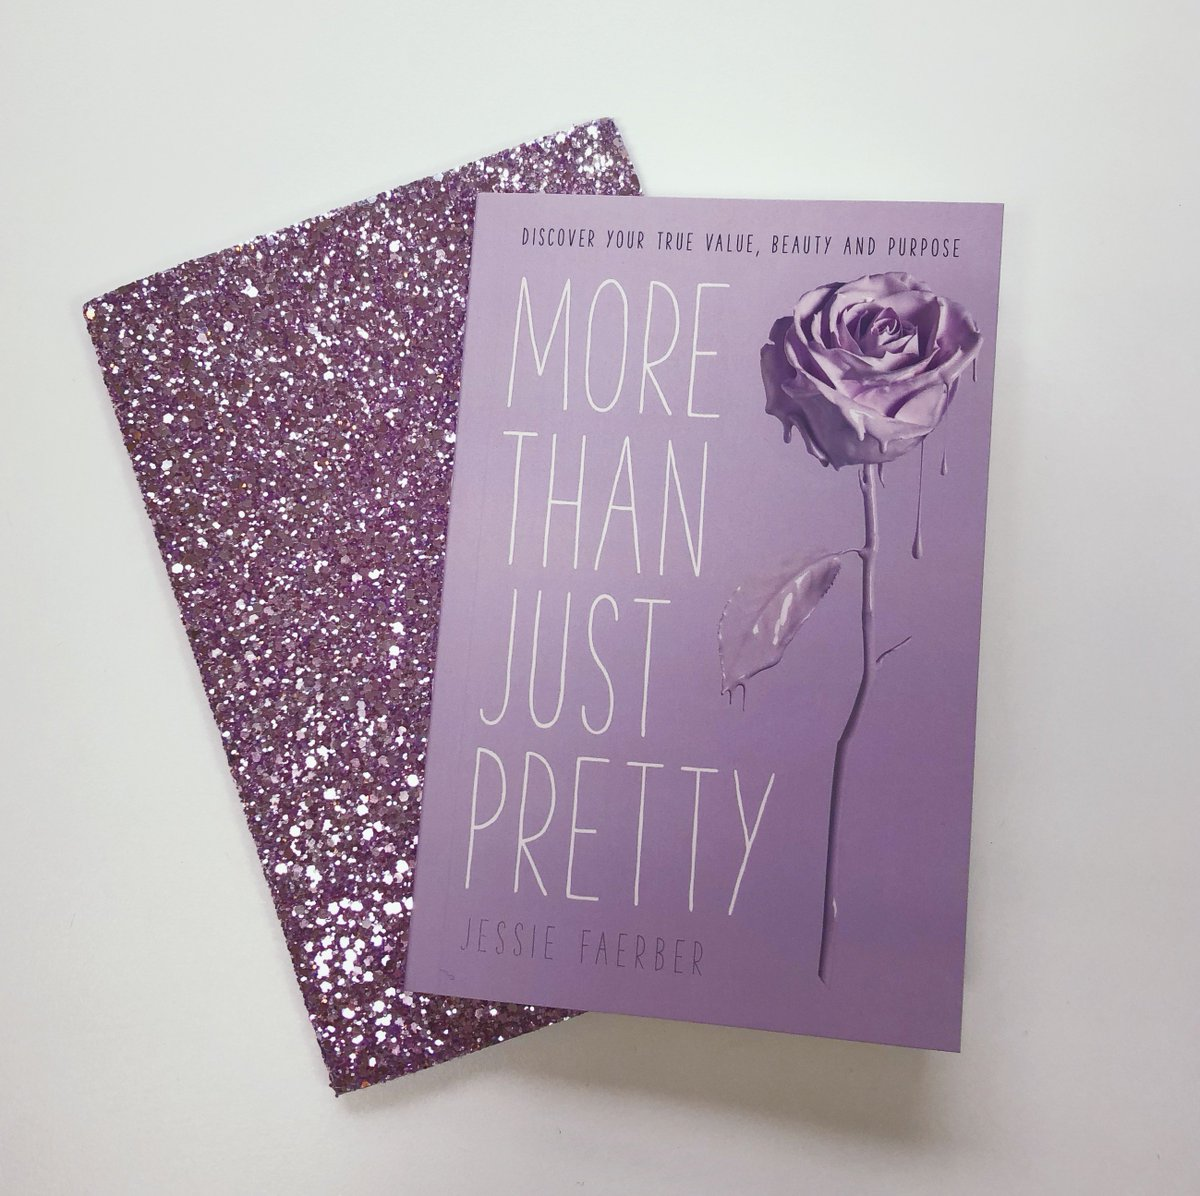 Happy #BookBirthday to @JessieFaerber&#39;s More Than Just Pretty! Designed by @MsLenith and look how it matches her notebook perfectly! #MoreThanJustPretty @SPCKPublishing<br>http://pic.twitter.com/hIsWRHciAH